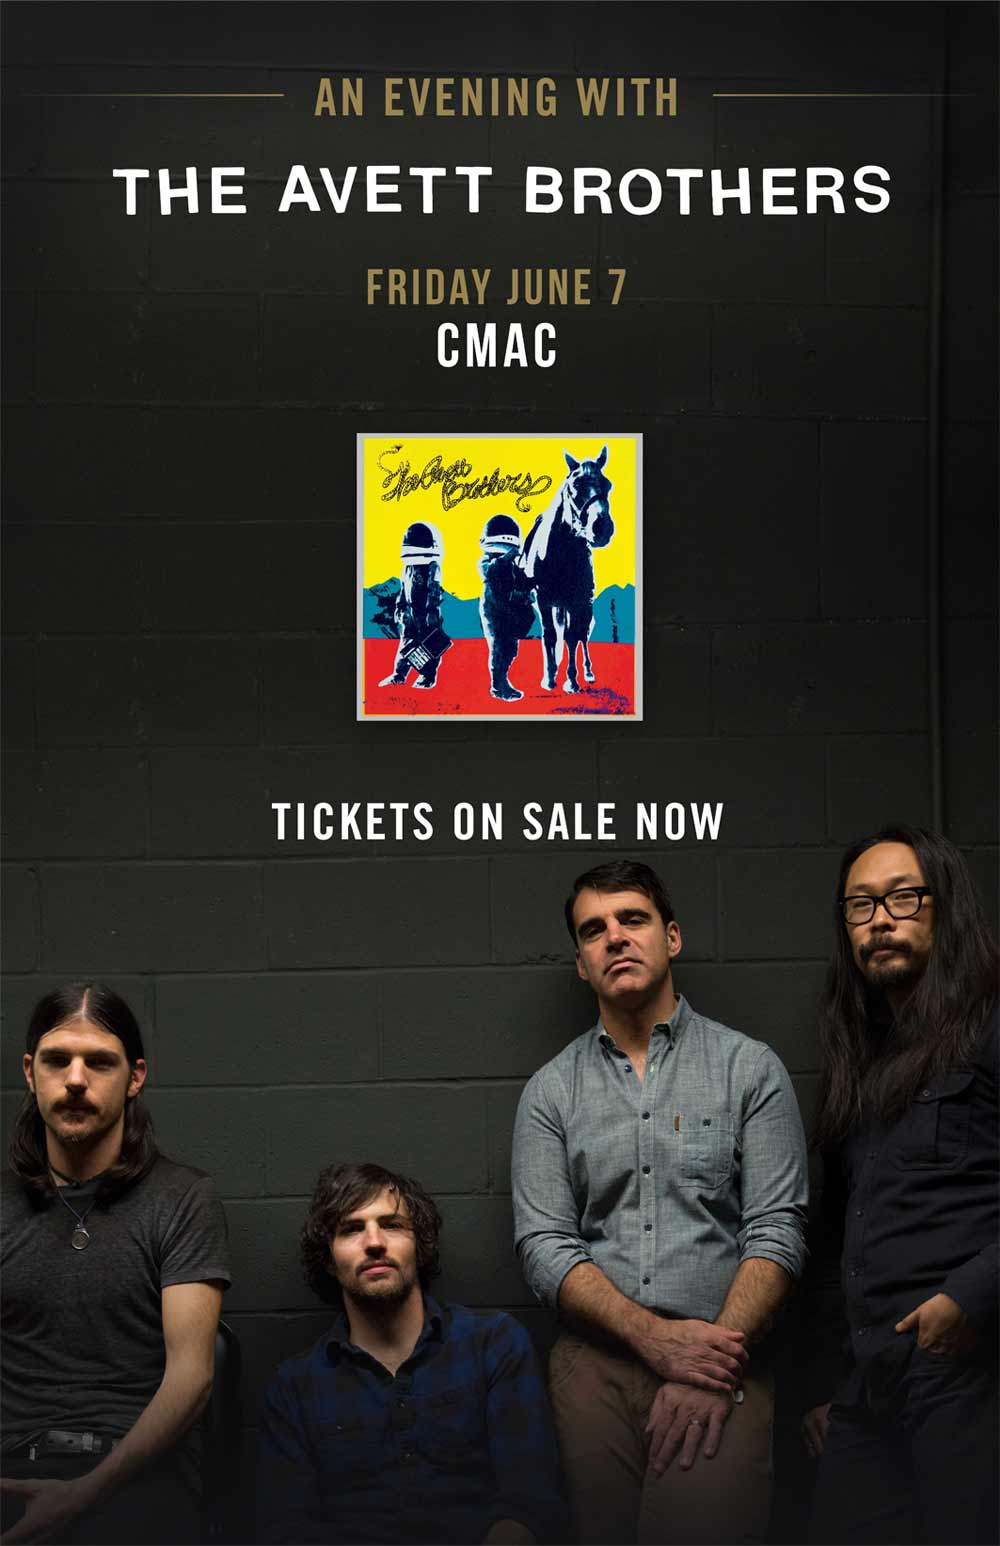 Avett Brothers show announcement